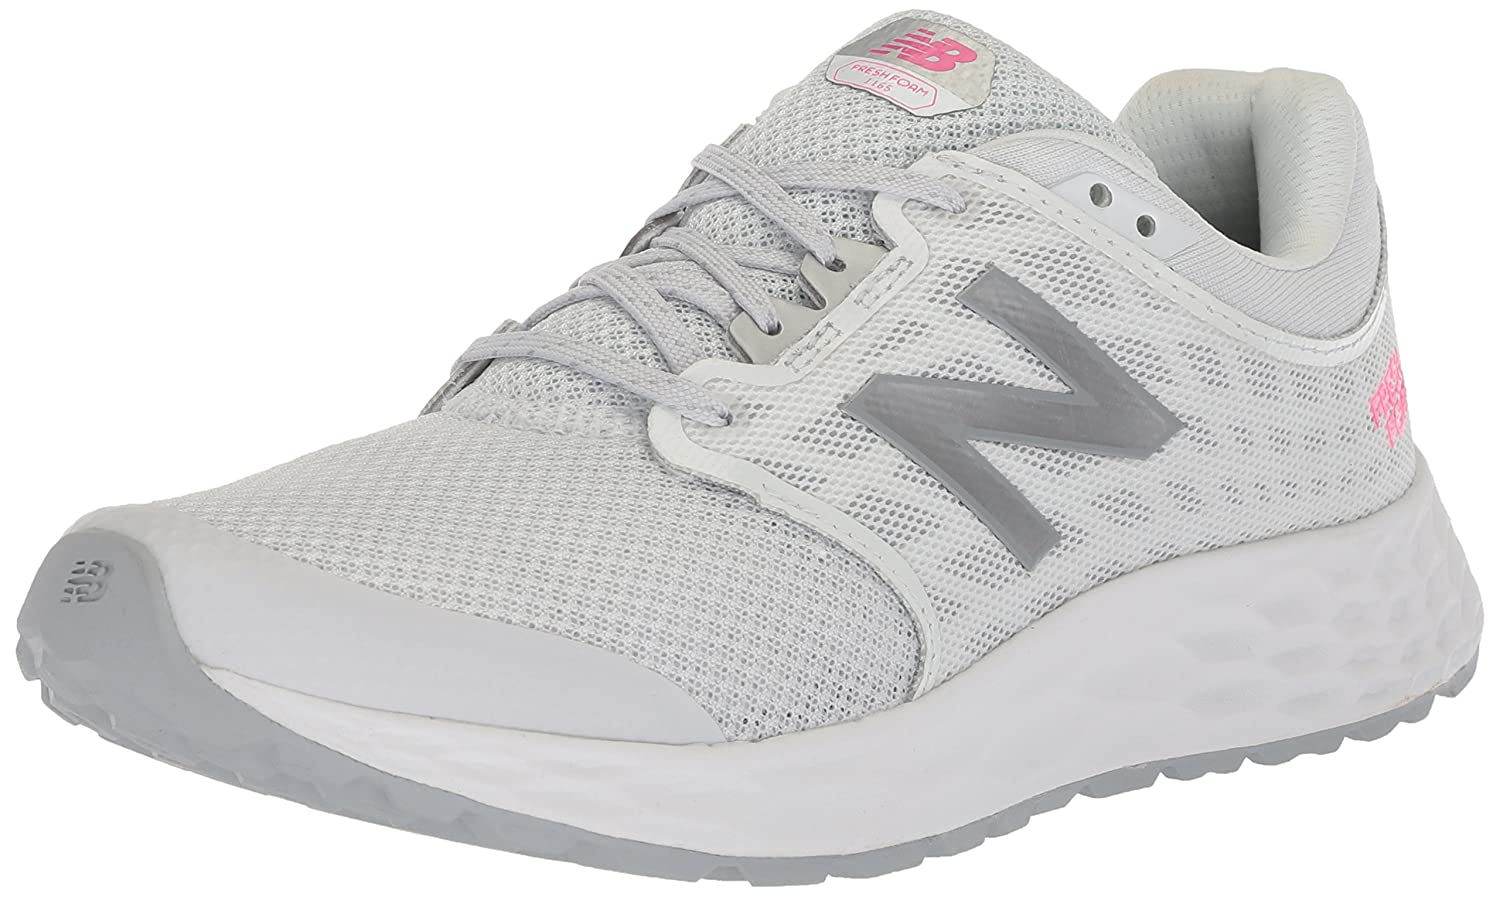 New Balance Women's 1165v1 Fresh Foam Walking Shoe B06XWTZQDQ 8.5 2E US|Grey/White